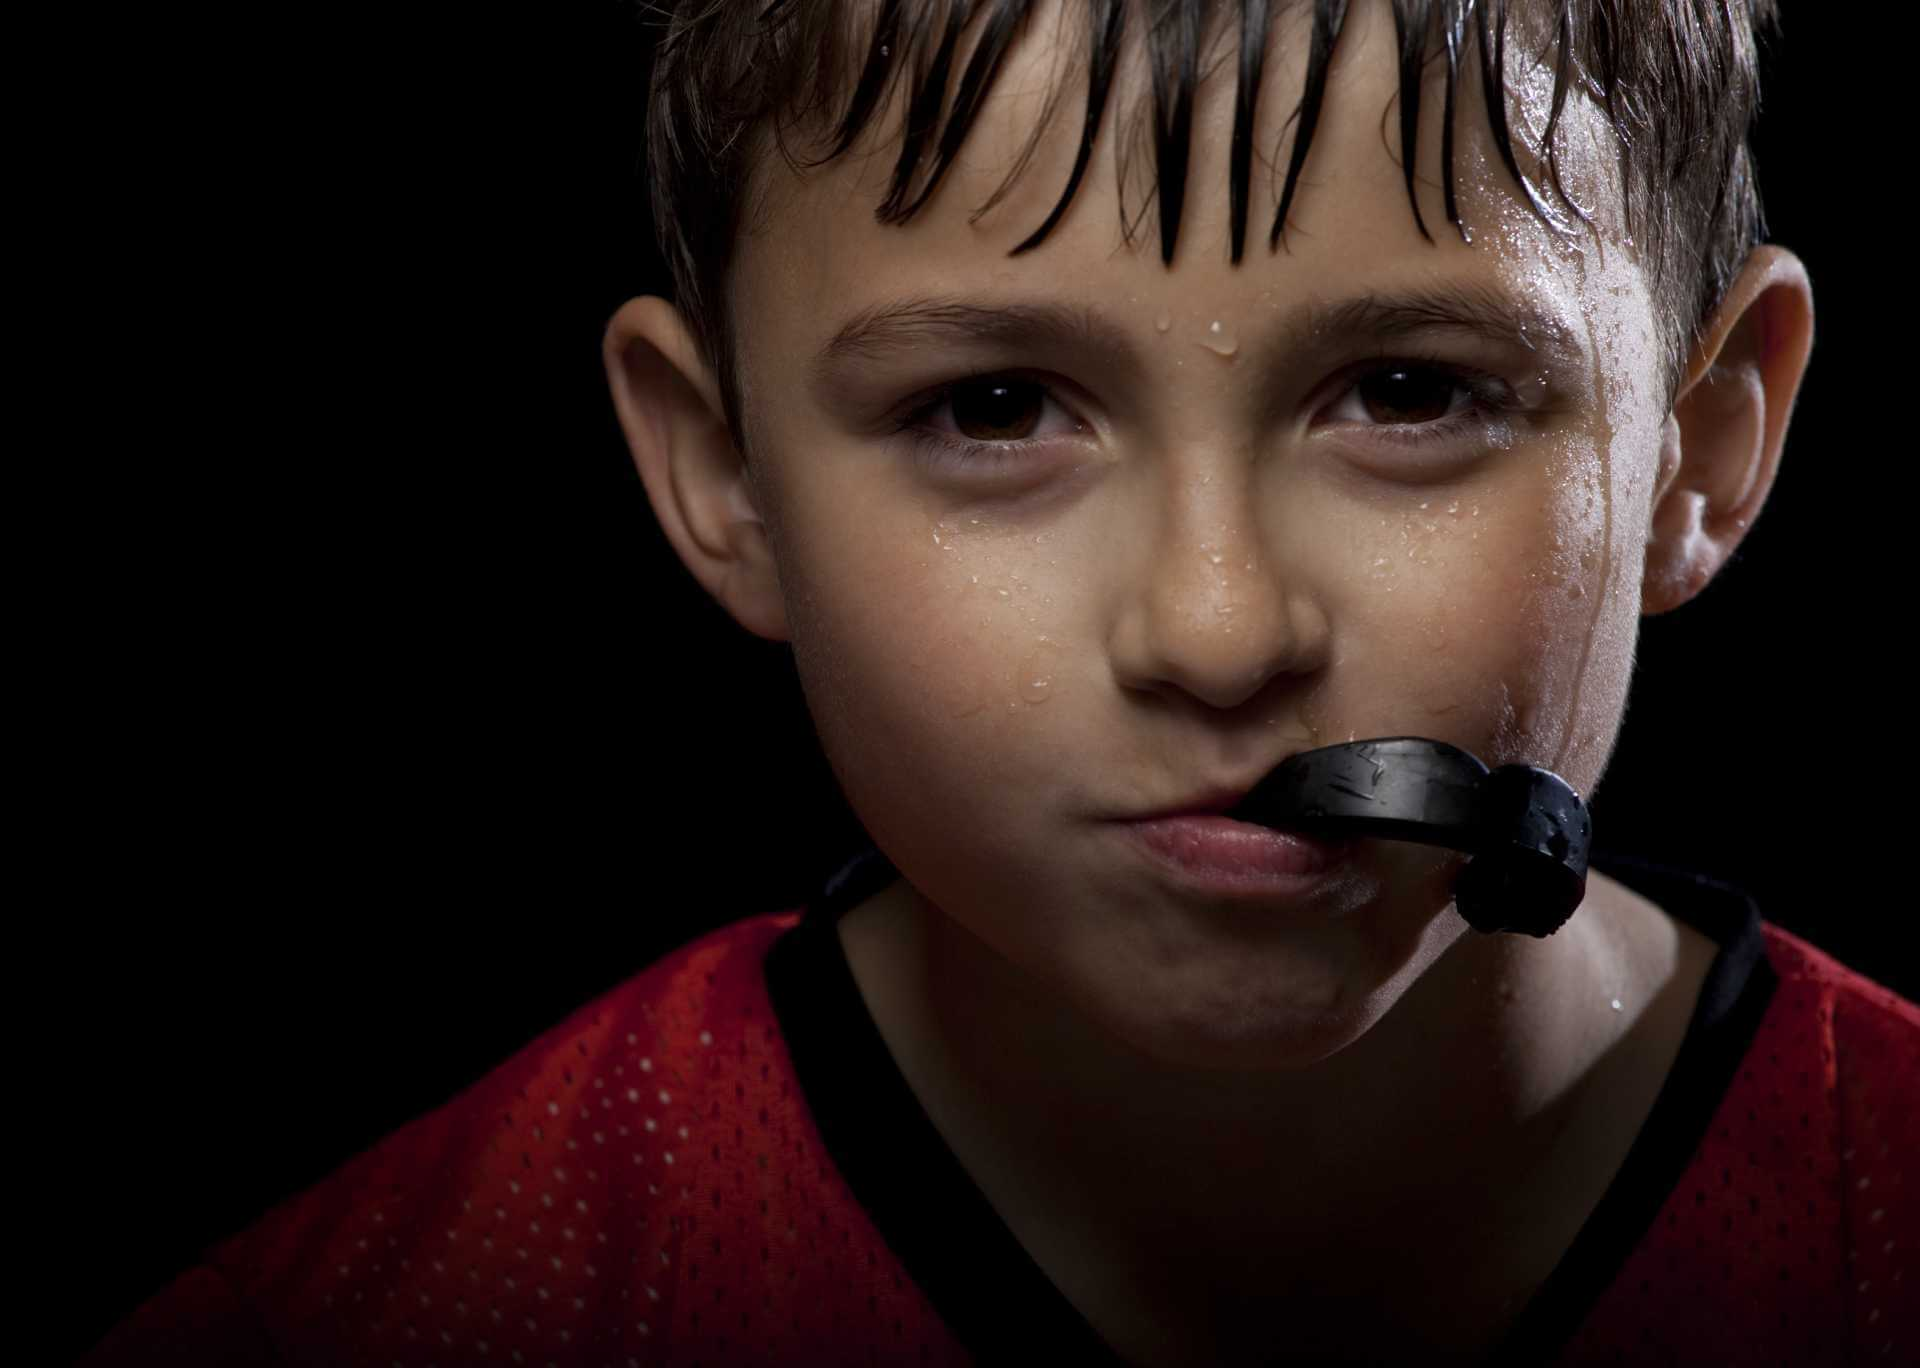 A child wearing custom mouth guards during sport